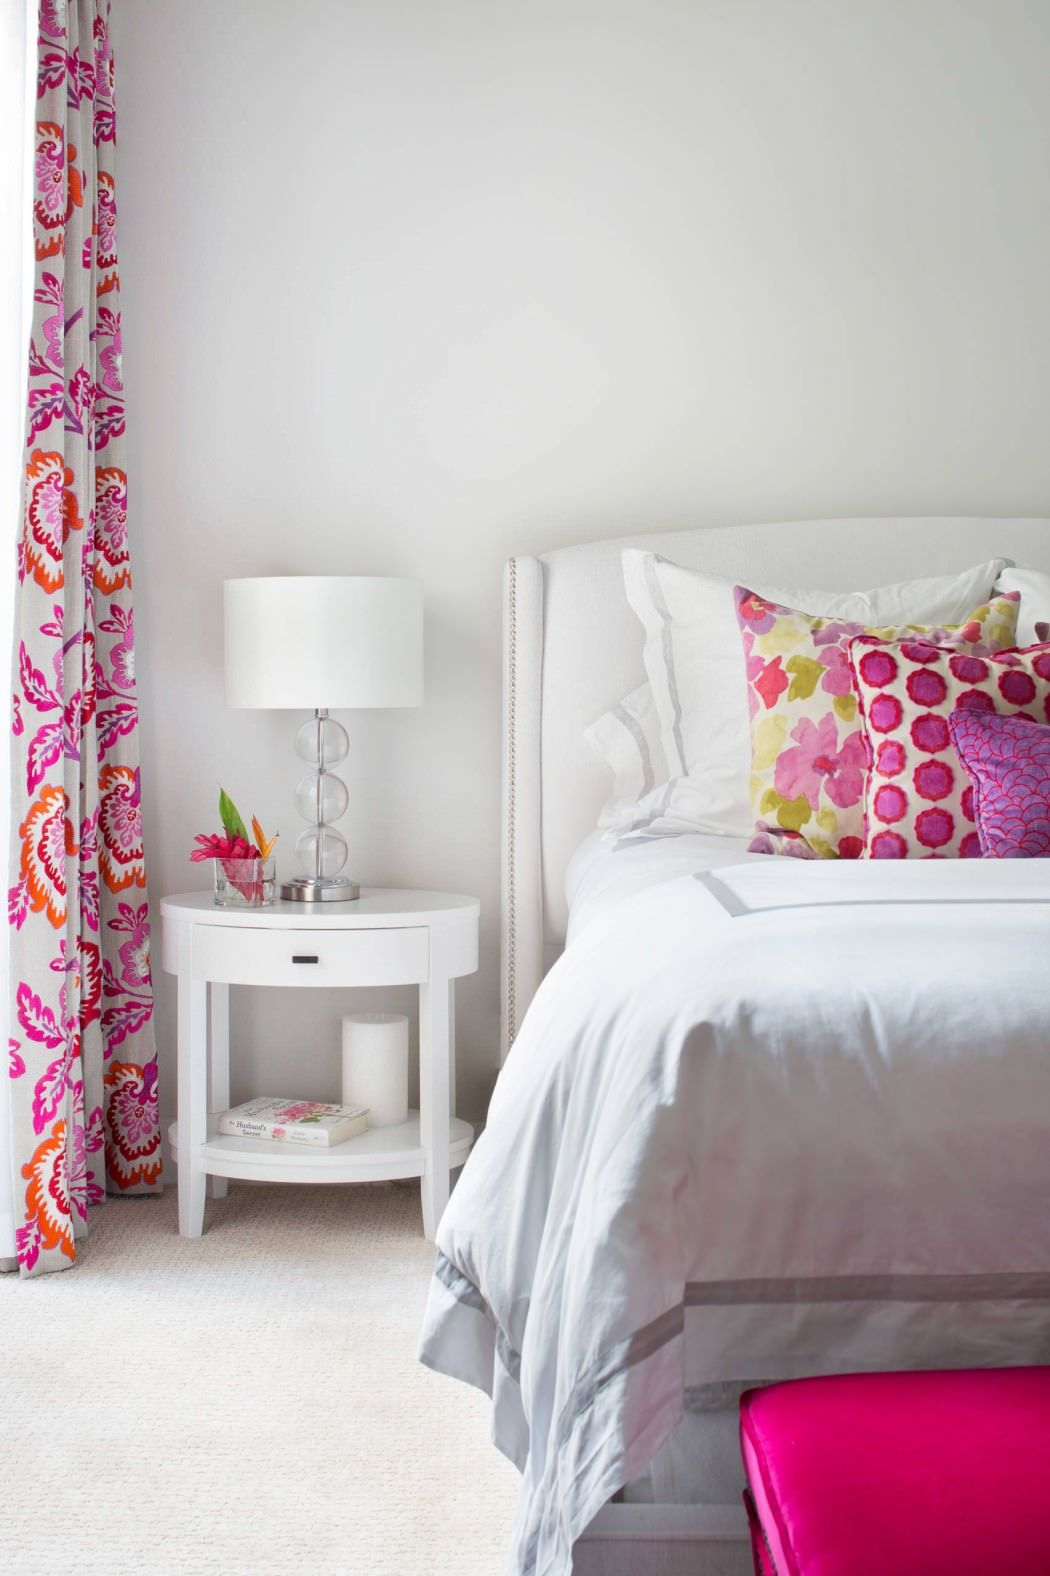 150 Square Feet Bedroom Interior Decoration and Photos. Girlish bedroom with white and pink combination